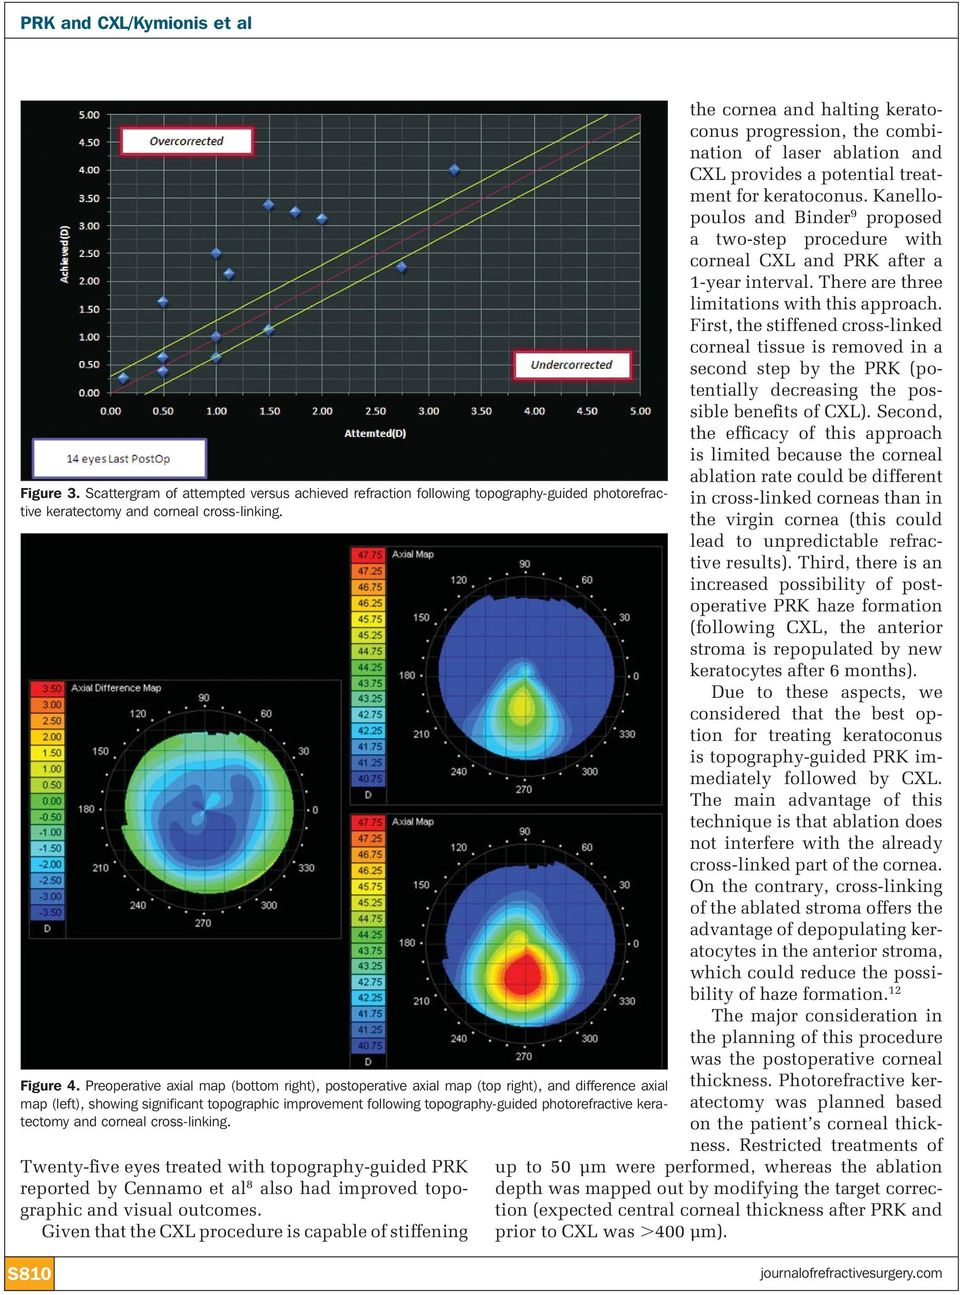 keratectomy and corneal cross-linking. Twenty-five eyes treated with topography-guided PRK reported by Cennamo et al 8 also had improved topographic and visual outcomes.